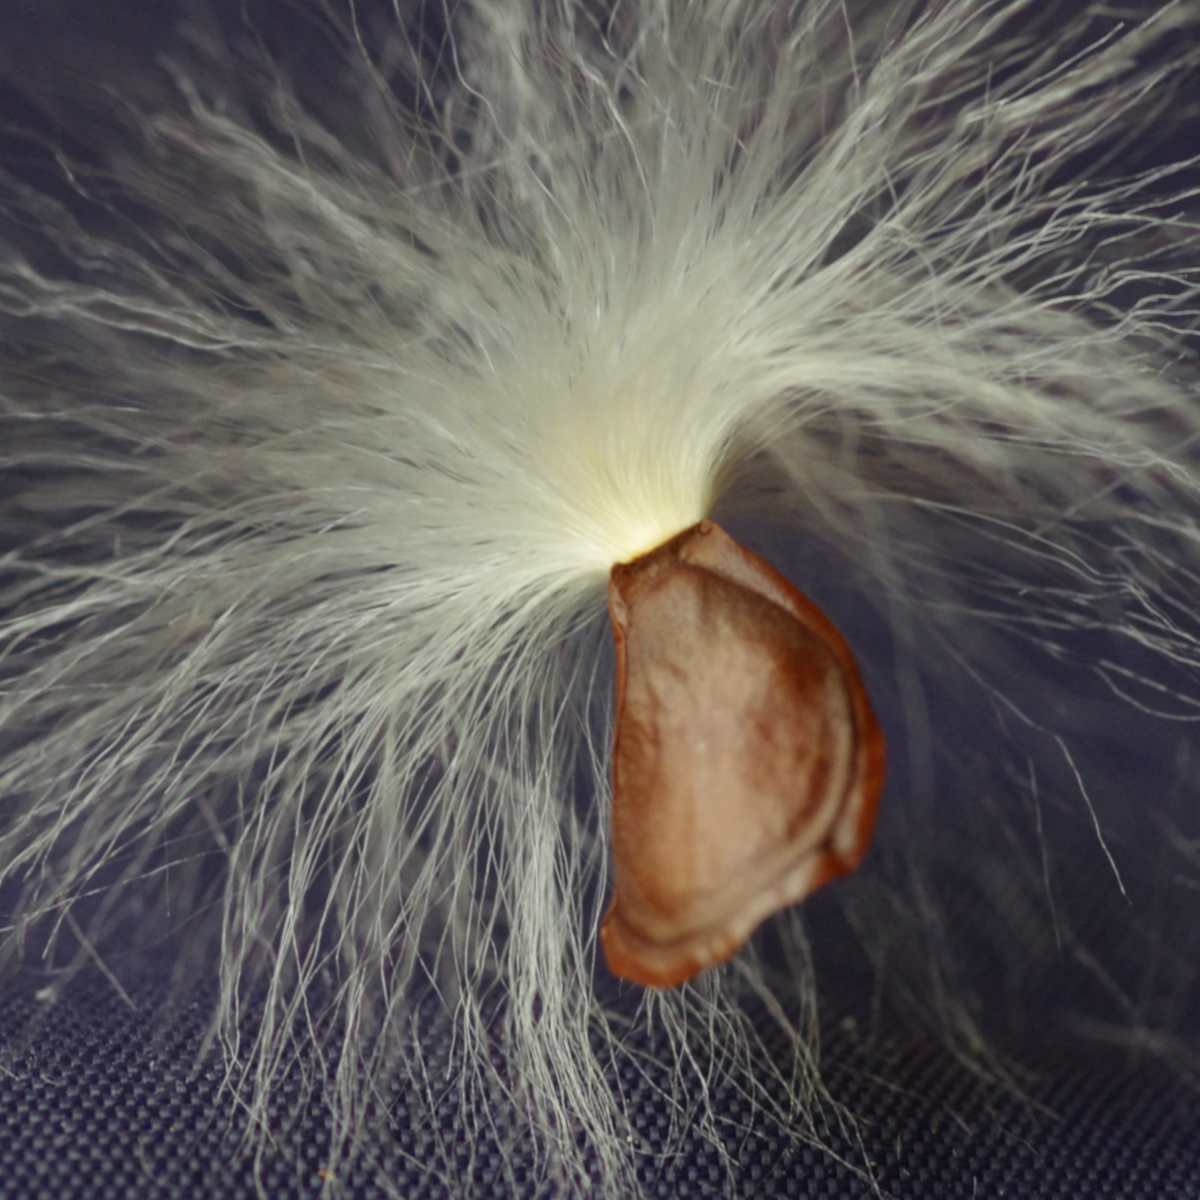 Seeds from the Stephanotis vine